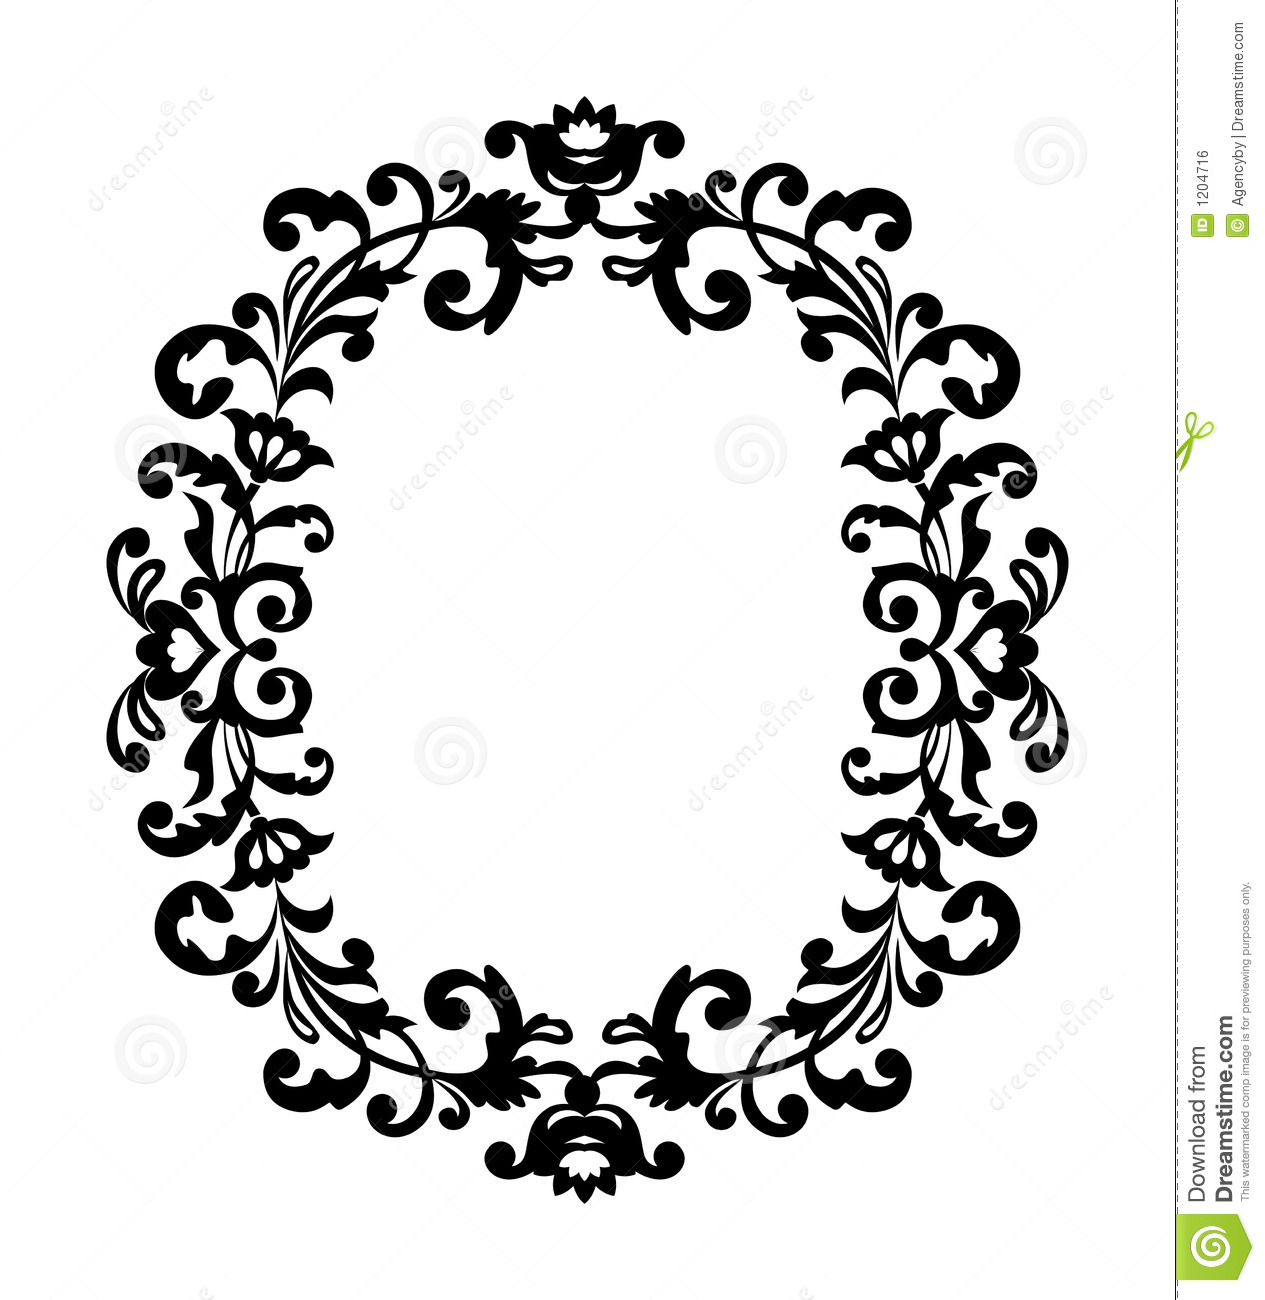 Decorative Black Flower Border Stock Image: Decorative Border Ornament Stock Vector. Illustration Of